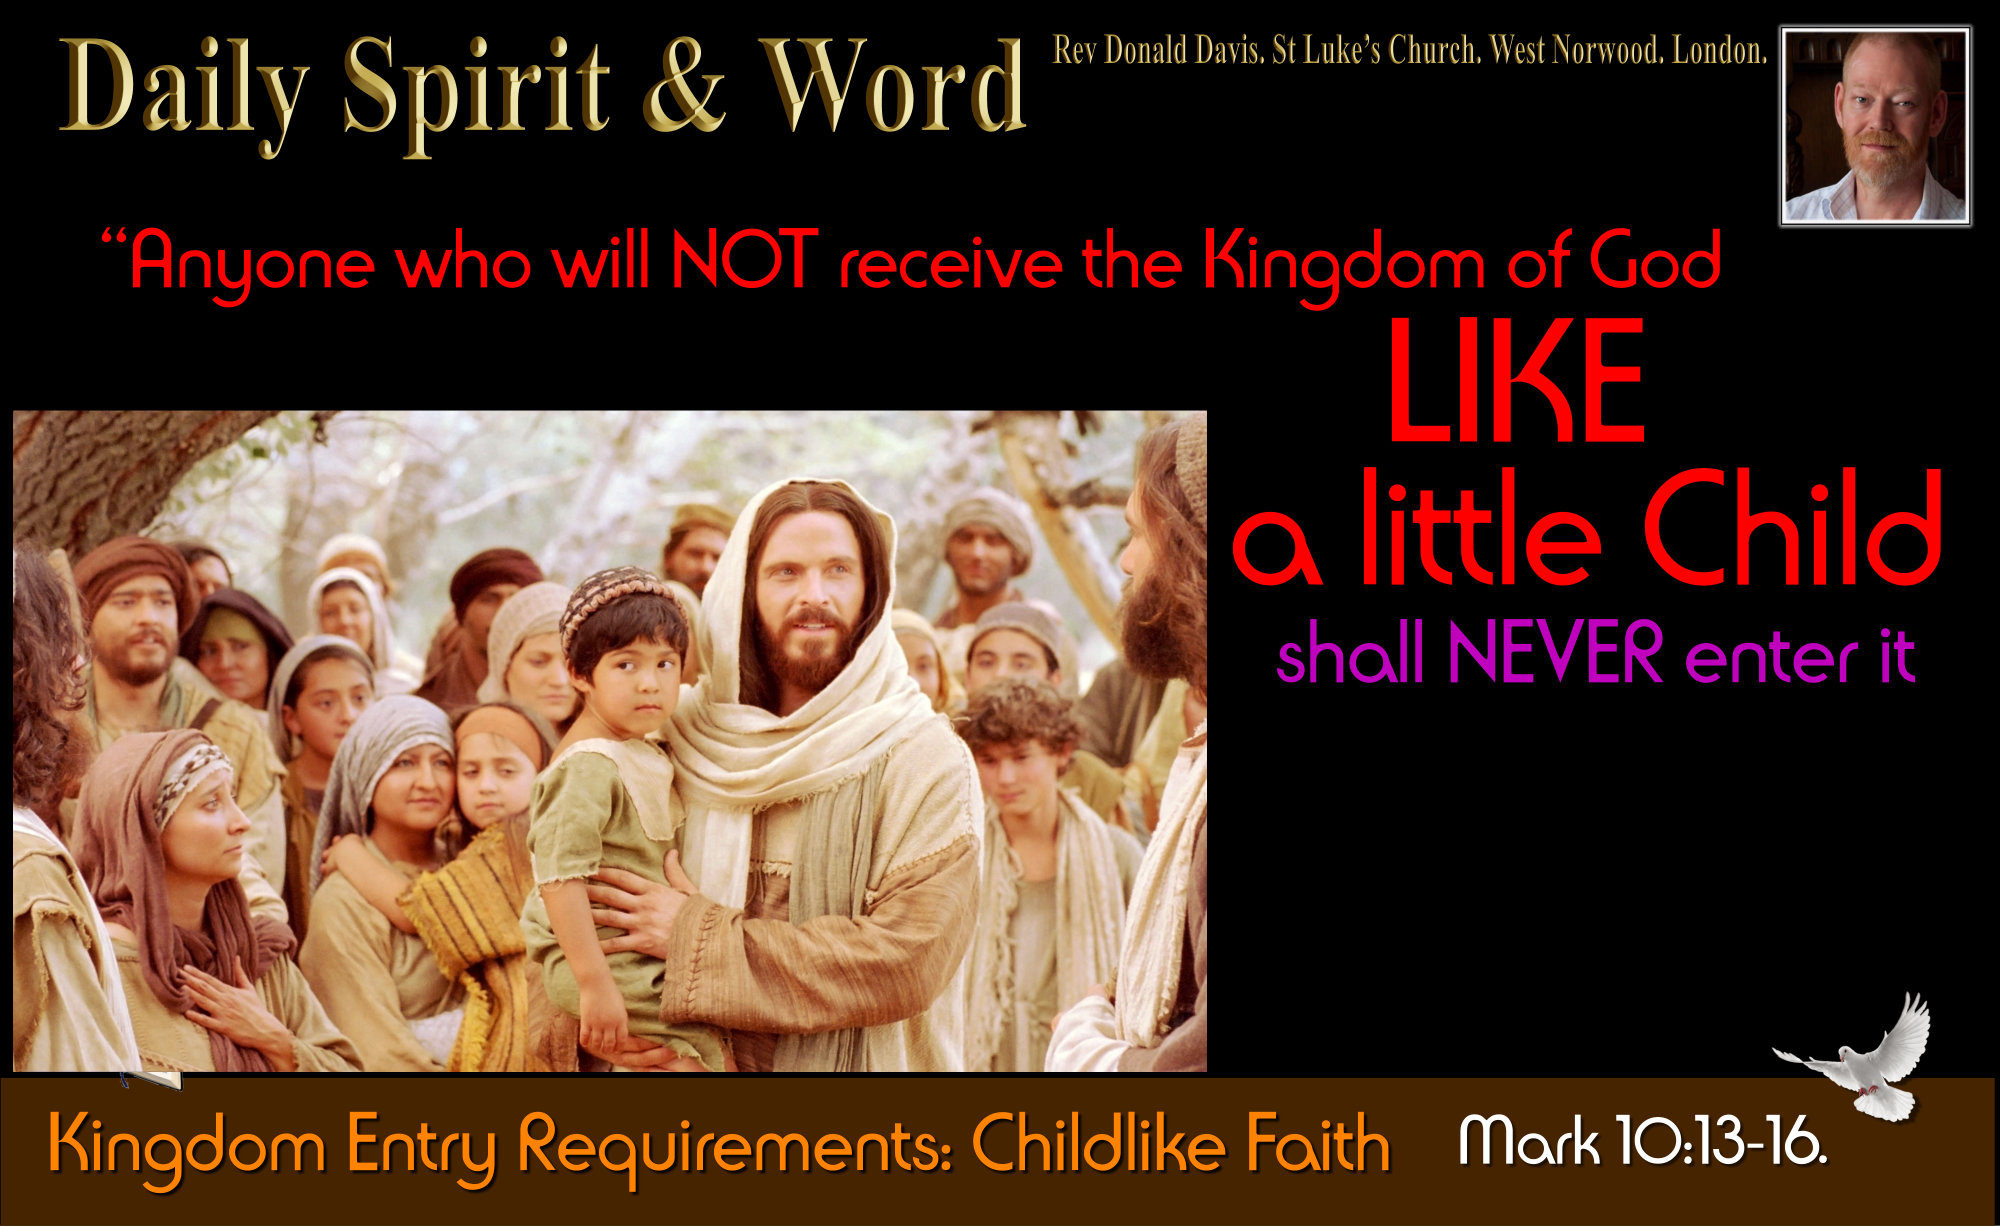 The Kingdom of Heaven is God's place, to get in, you must become like a little child.